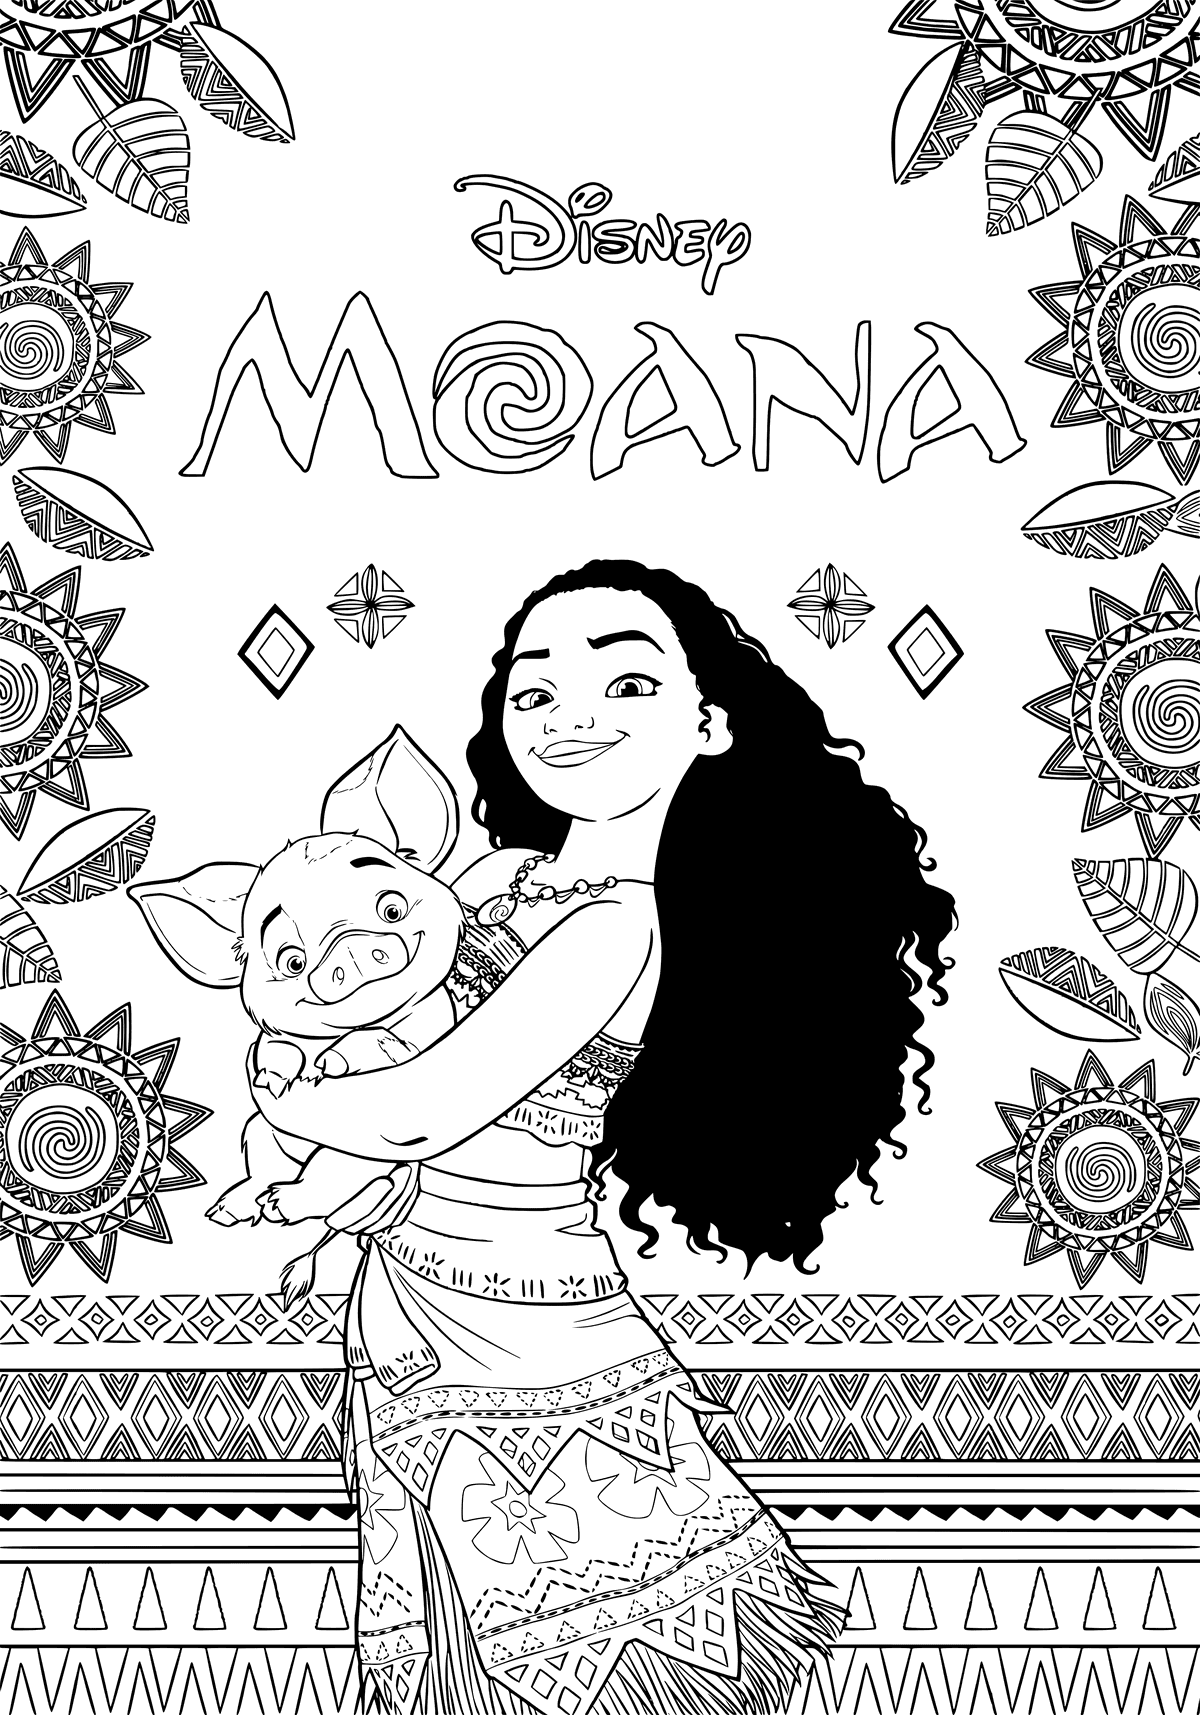 Moana Coloring Pages - Best Coloring Pages For Kids  Moana